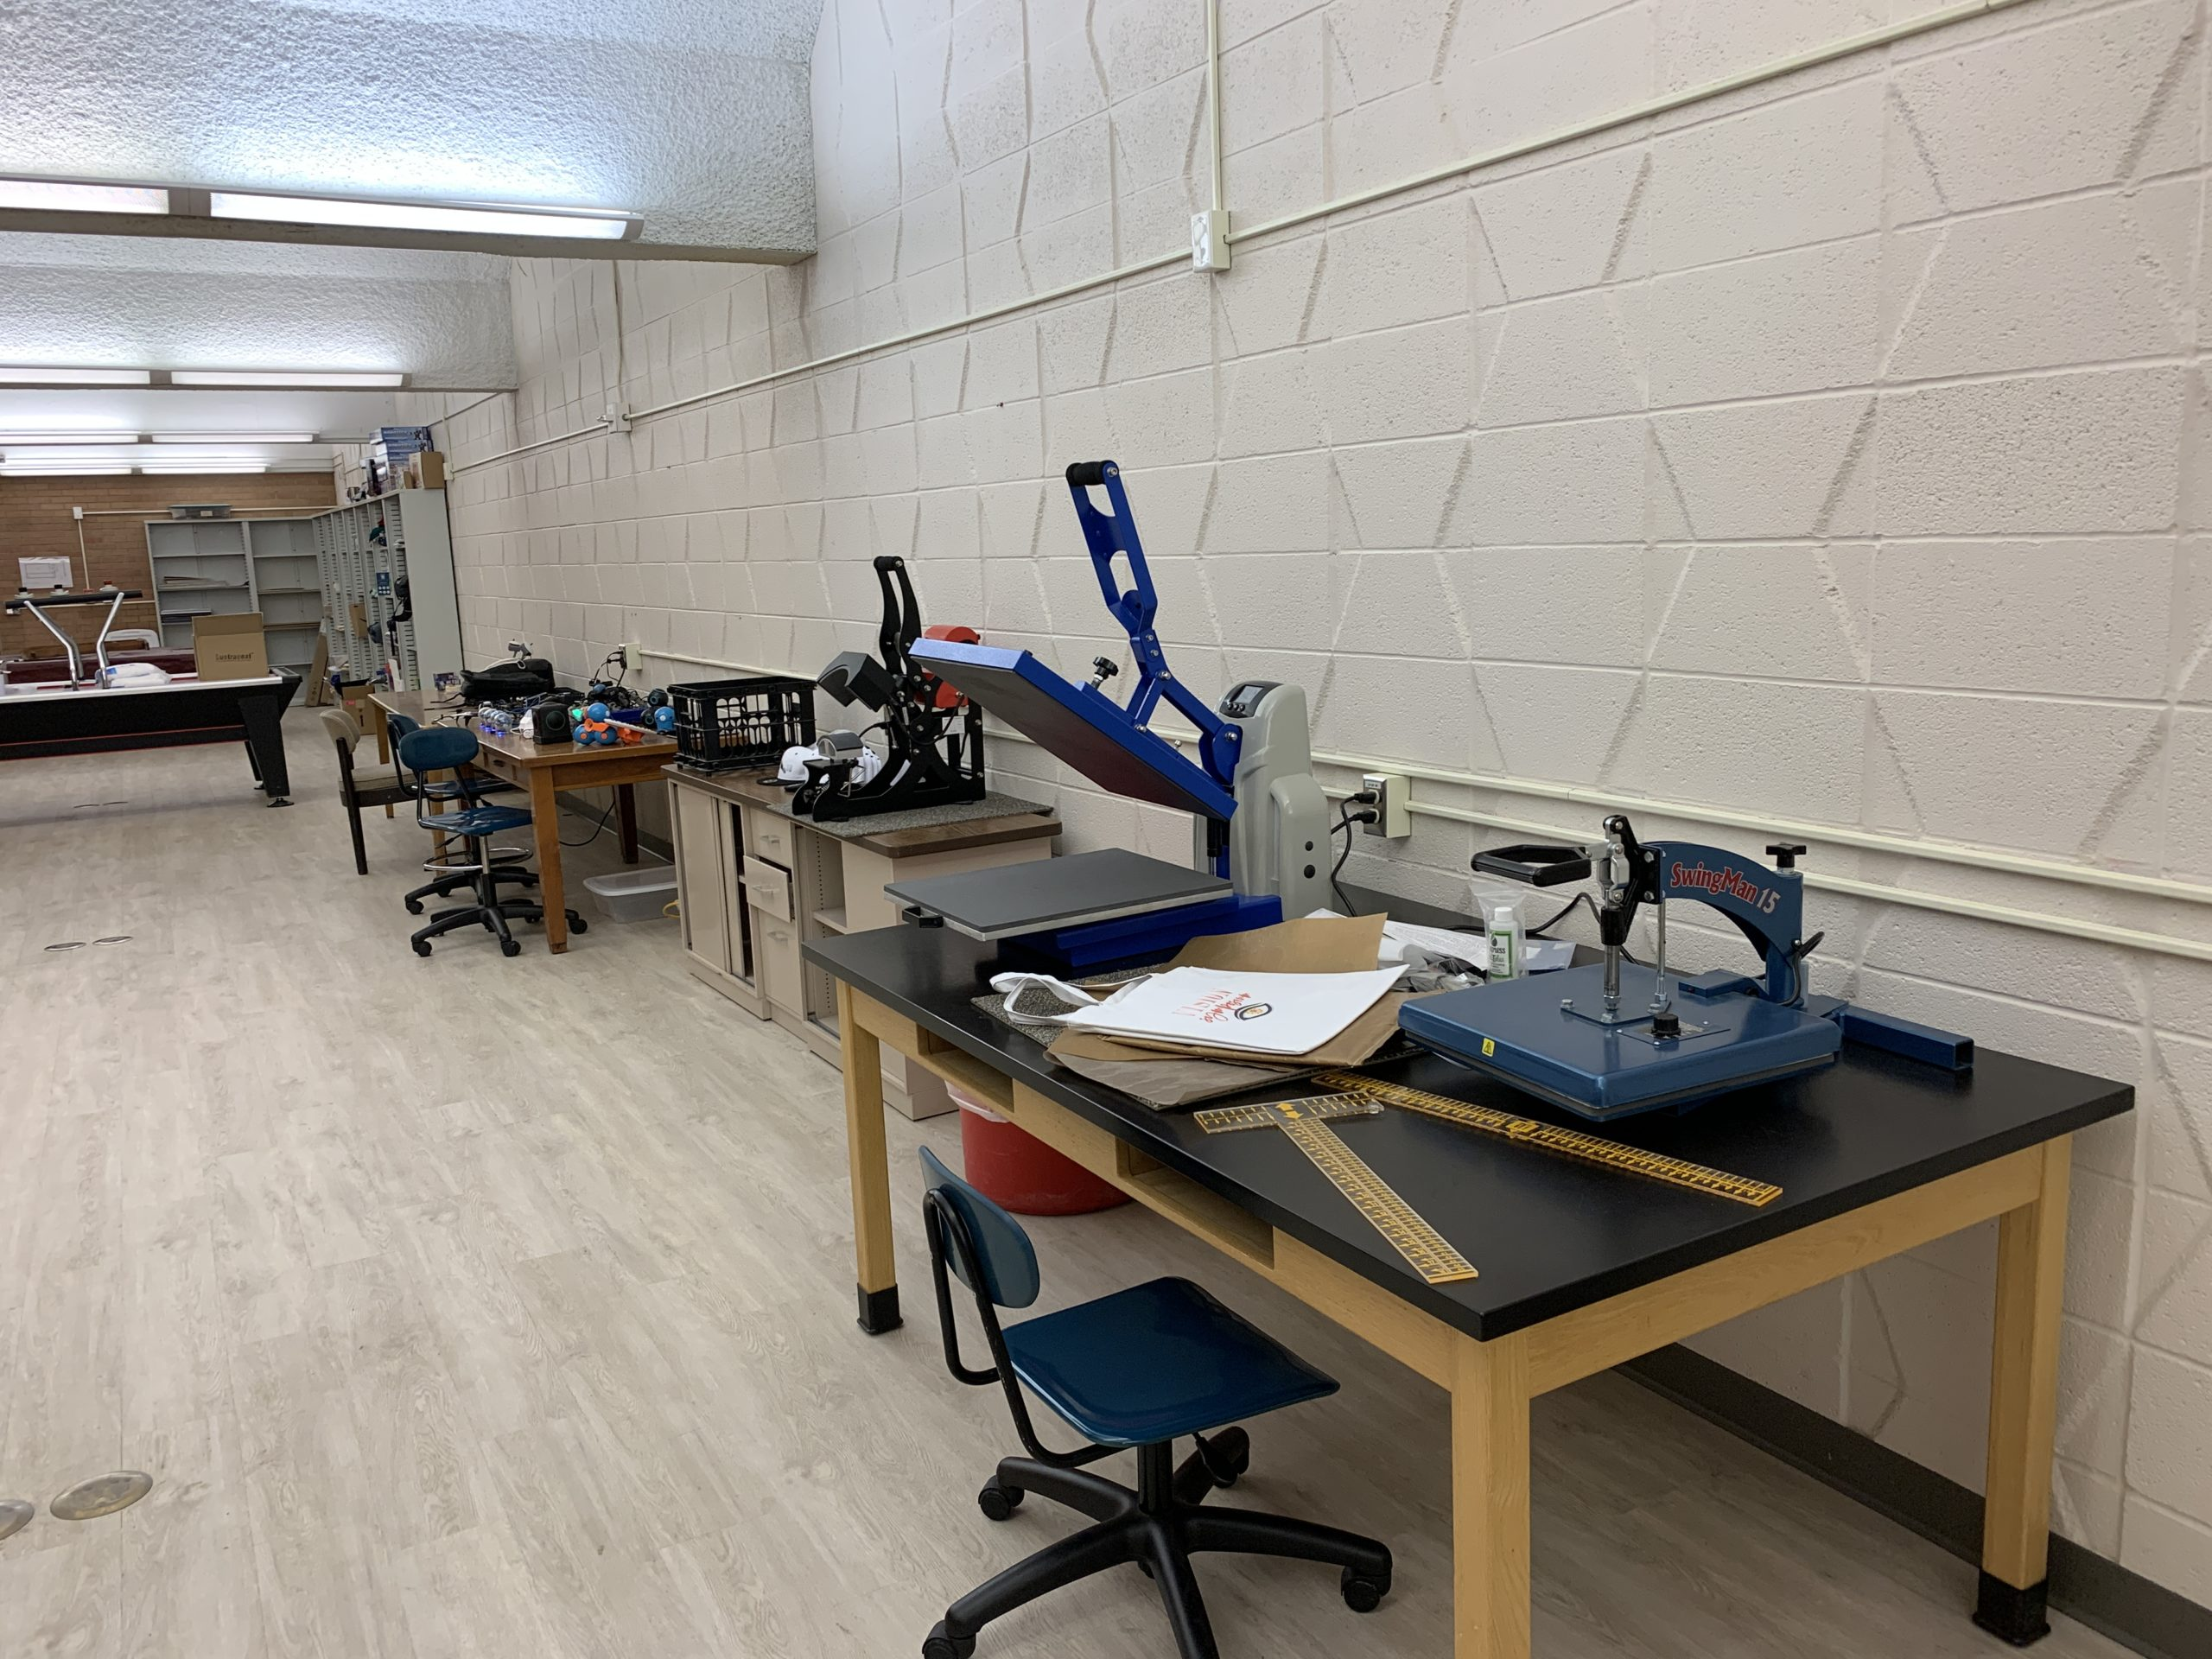 makerspace 2 with equipment on tables